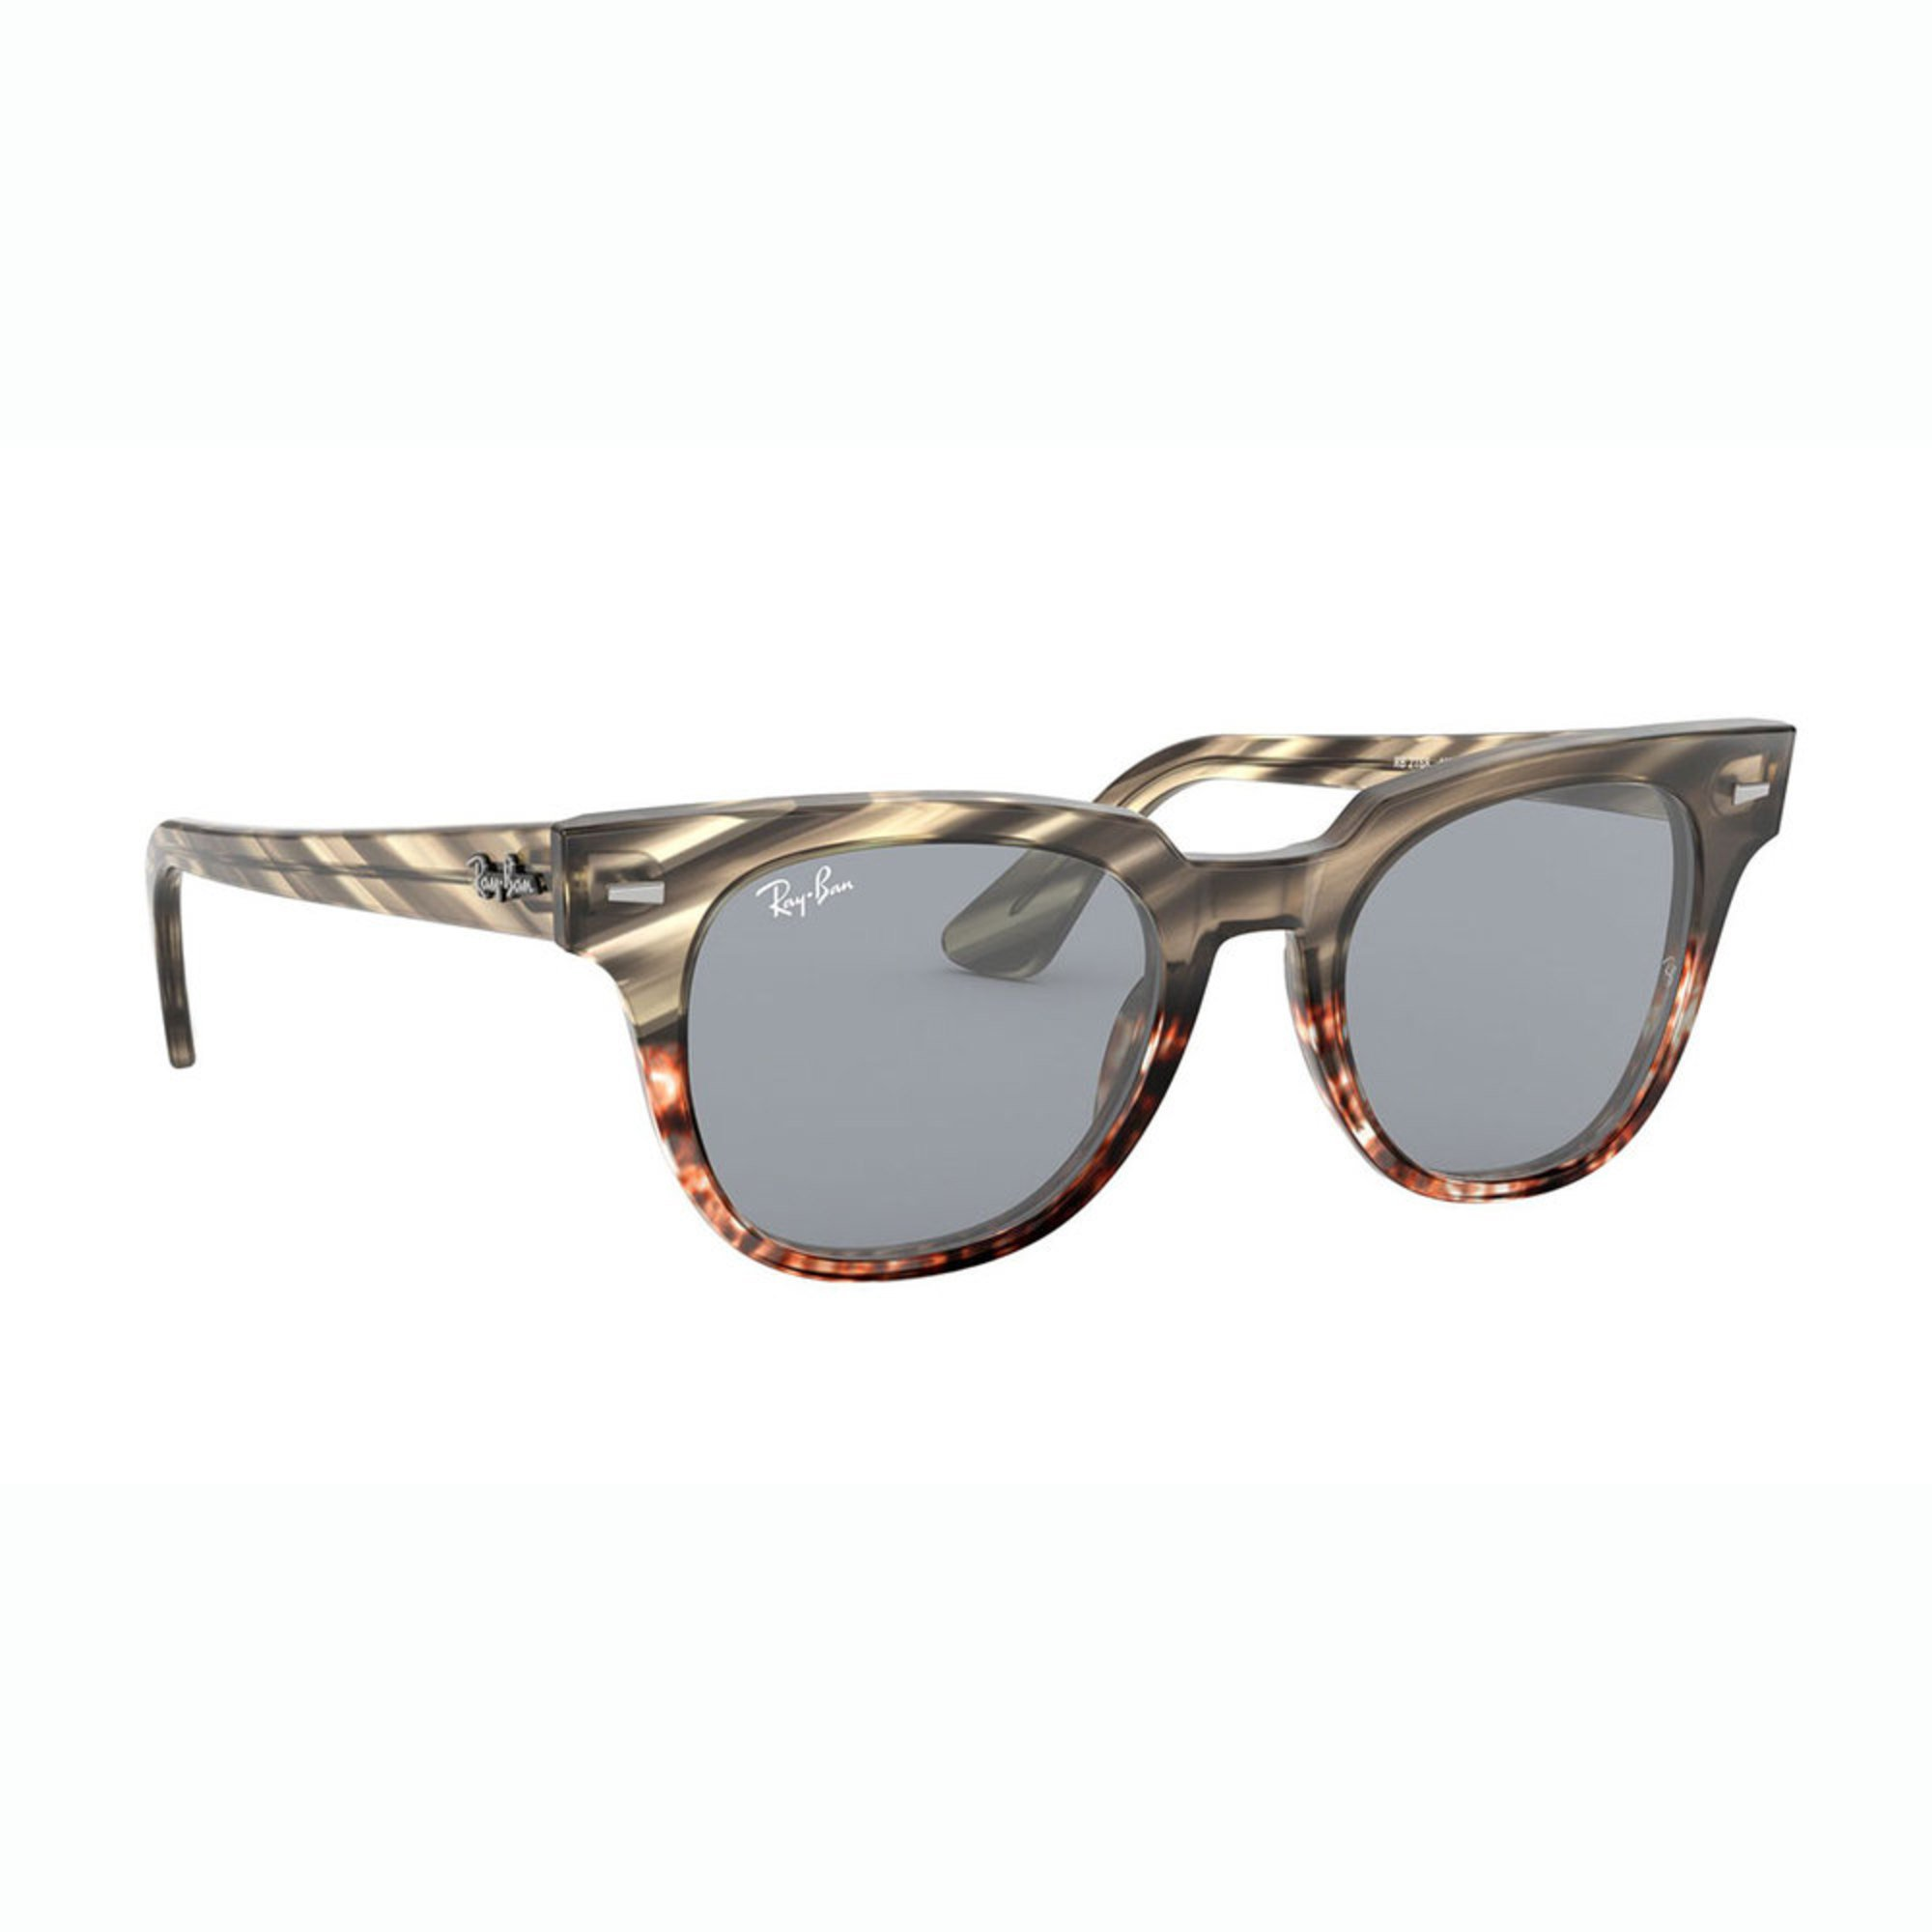 781419360d Ray-Ban. Ray-Ban Unisex Grey Gradient Brown Stripped Sunglasses 50mm